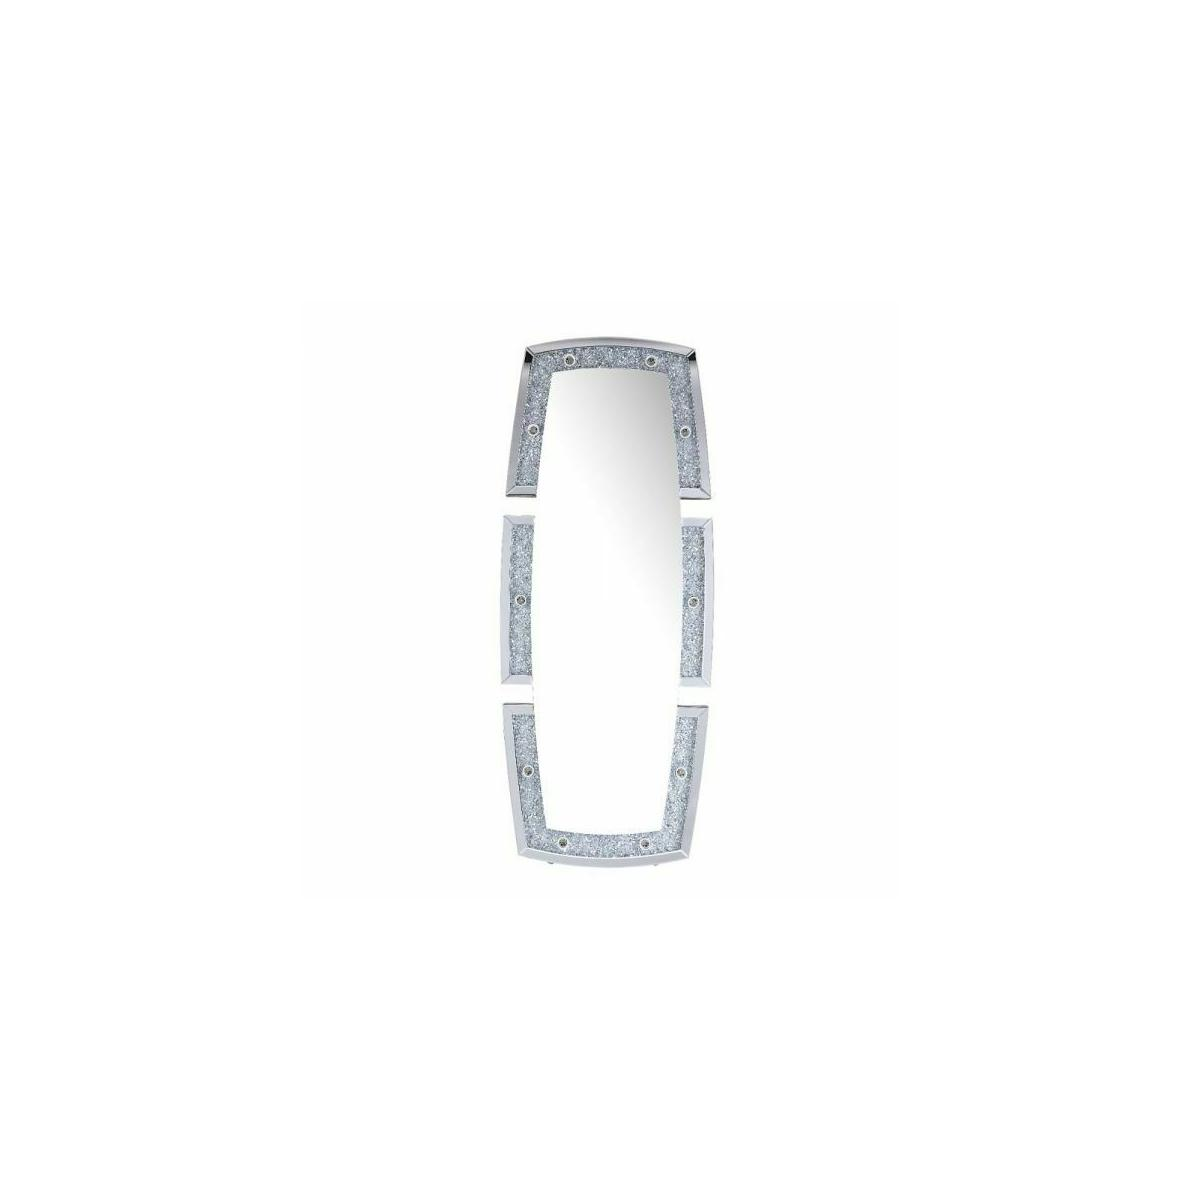 ACME Noralie Wall Decor - 97759 - Glam - LED Light, Mirror, Glass, MDF, Faux Diamonds (Acrylic) - Mirrored and Faux Diamonds